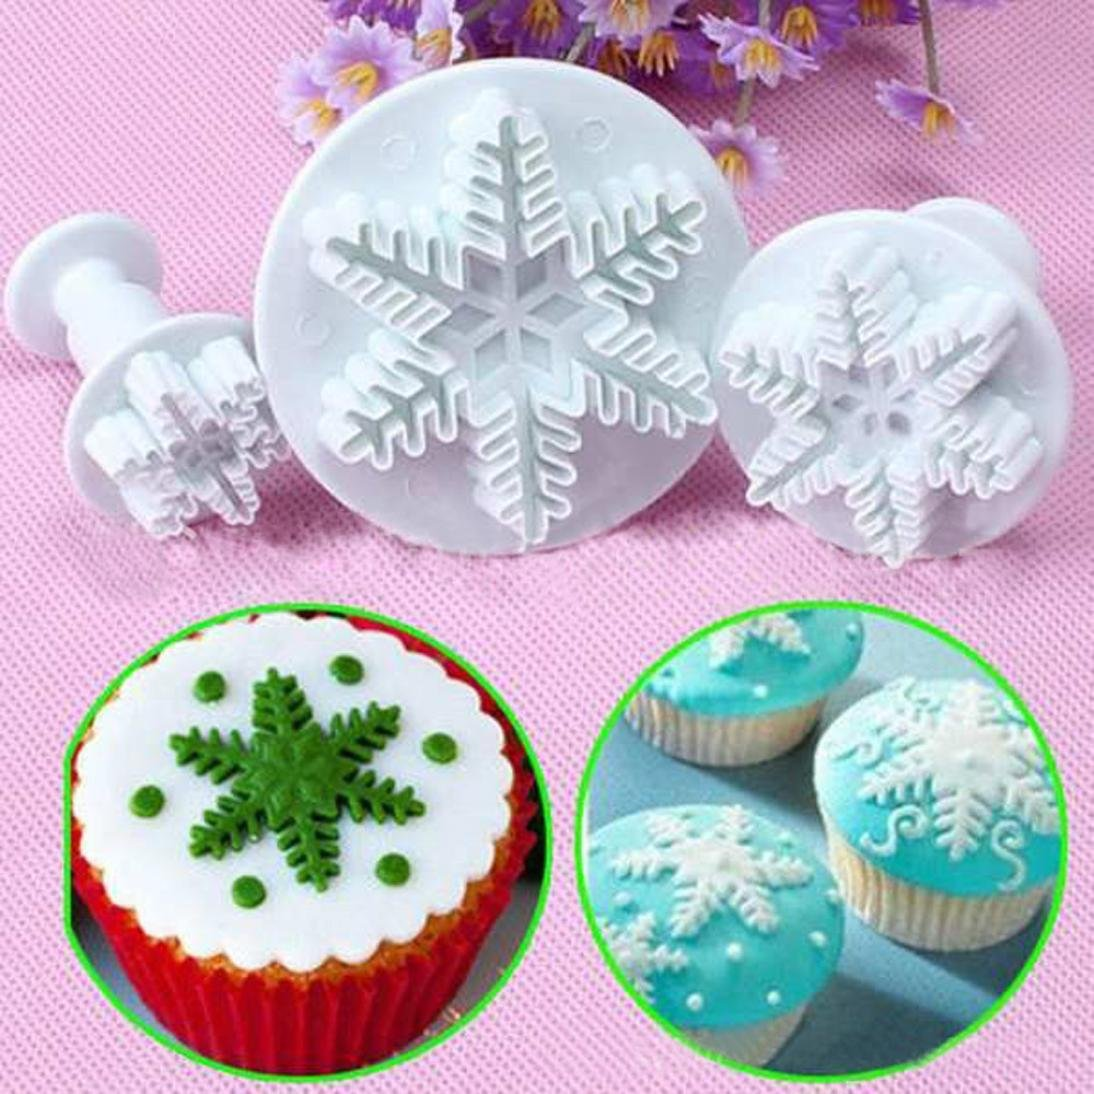 Vibola 3Pcs Snowflake Cake Decorating Fondant Plunger Cutters Mold Mould Cake Pie Slicer Cake Cutters Cookie Fondant Dessert Tools Kitchen Gadget Vibola® 155